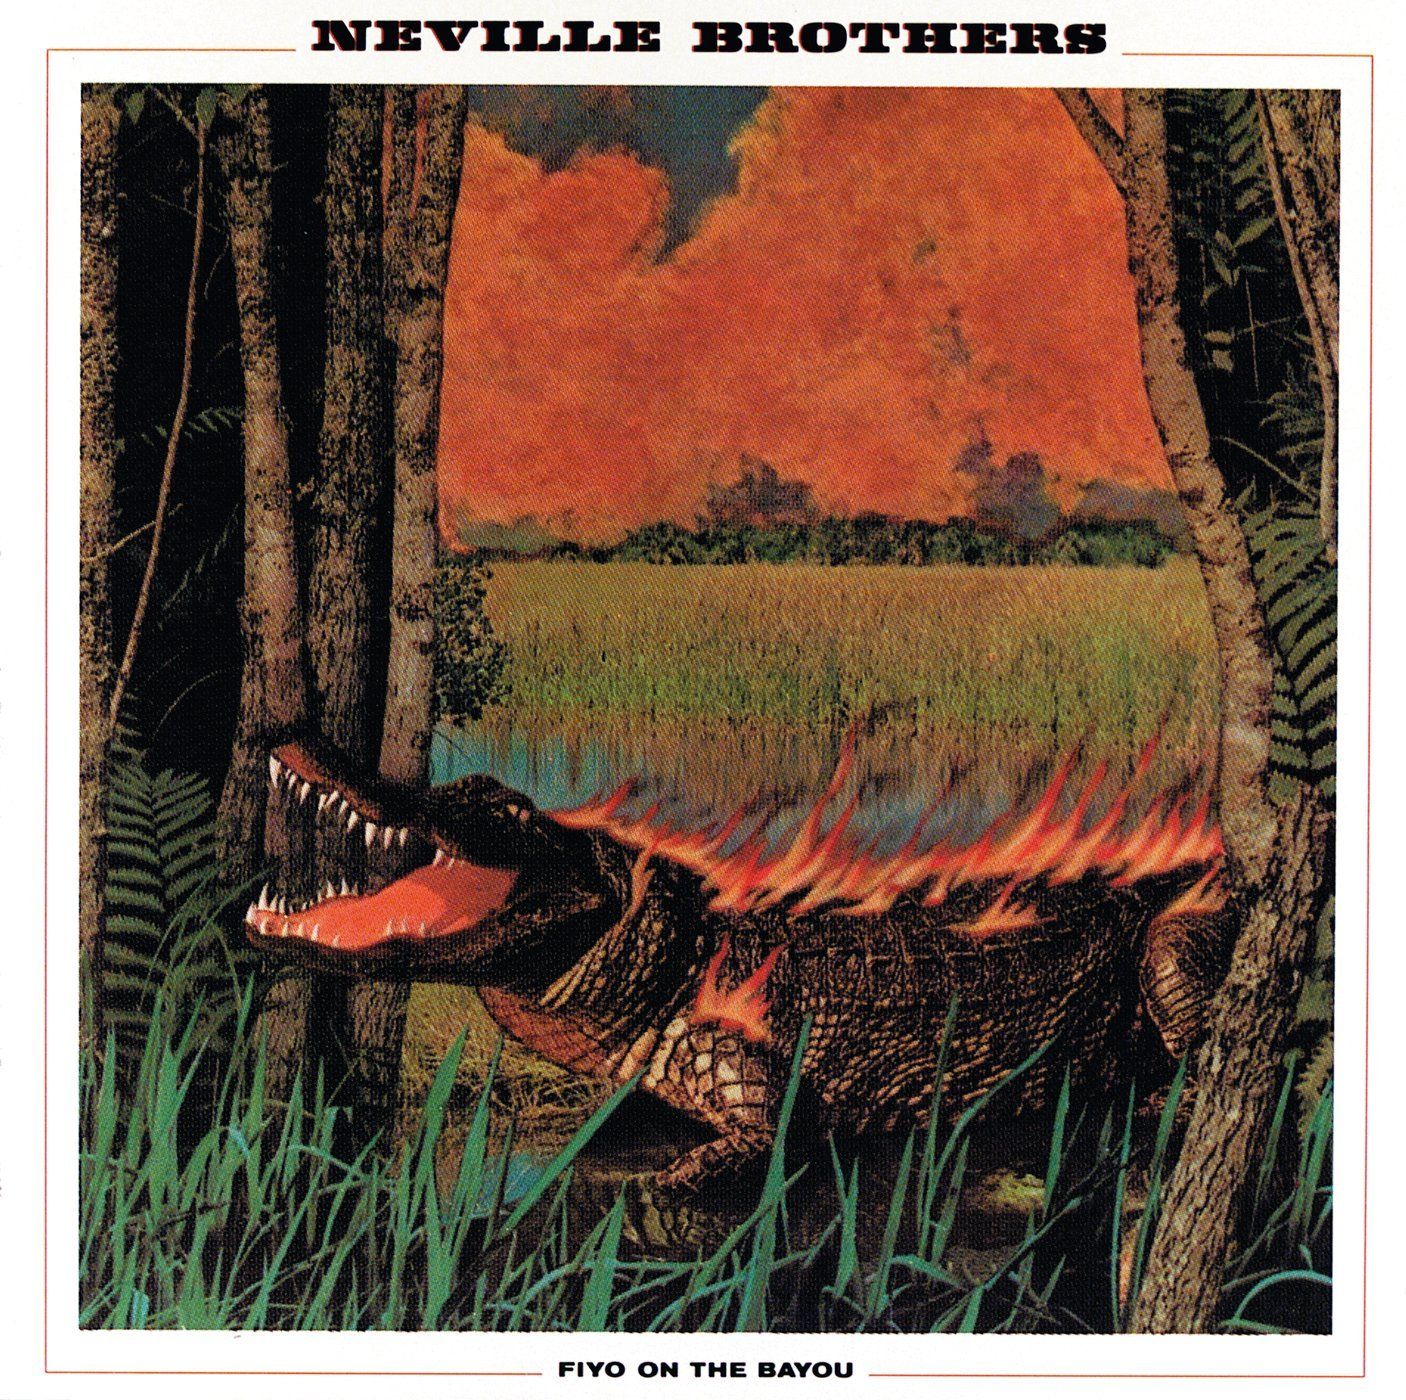 The Neville Brothers - Fiyo On The Bayou (A&M, 1981). Cover art by Lou Beach.